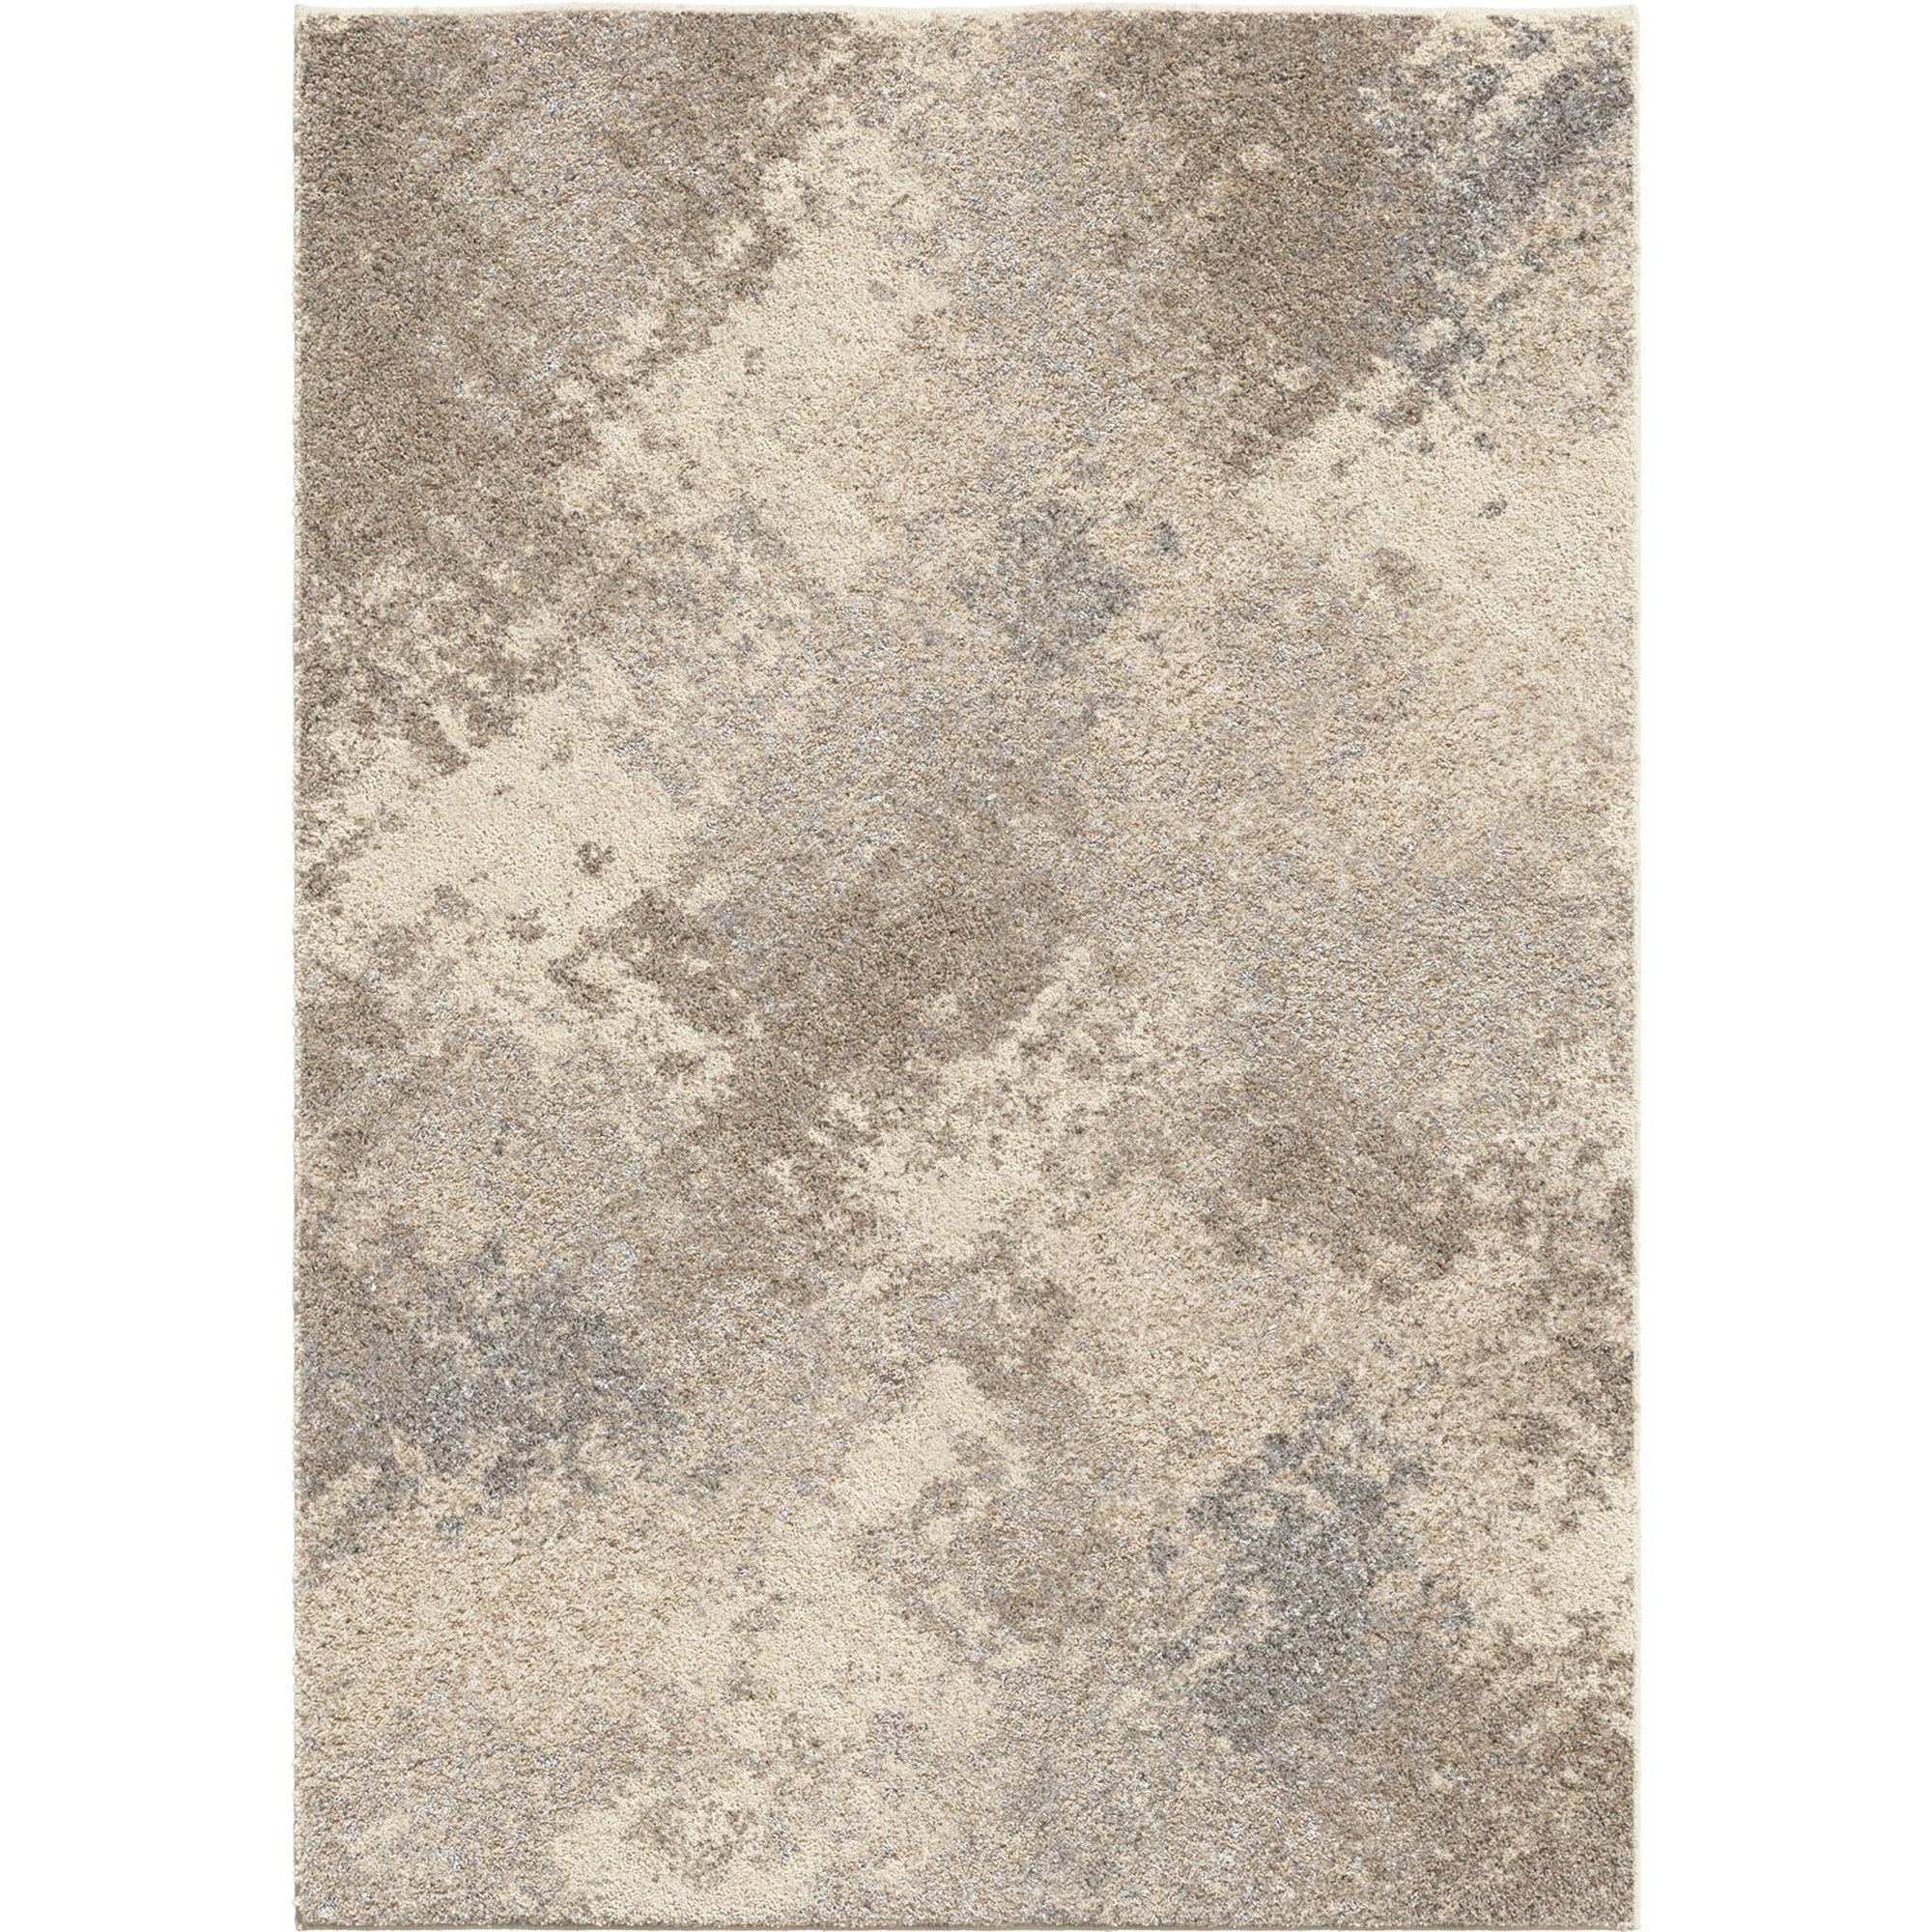 Airhaven Contemporary 5x8 Area Rug in Cream/Grey by Armen Living at Fisher Home Furnishings